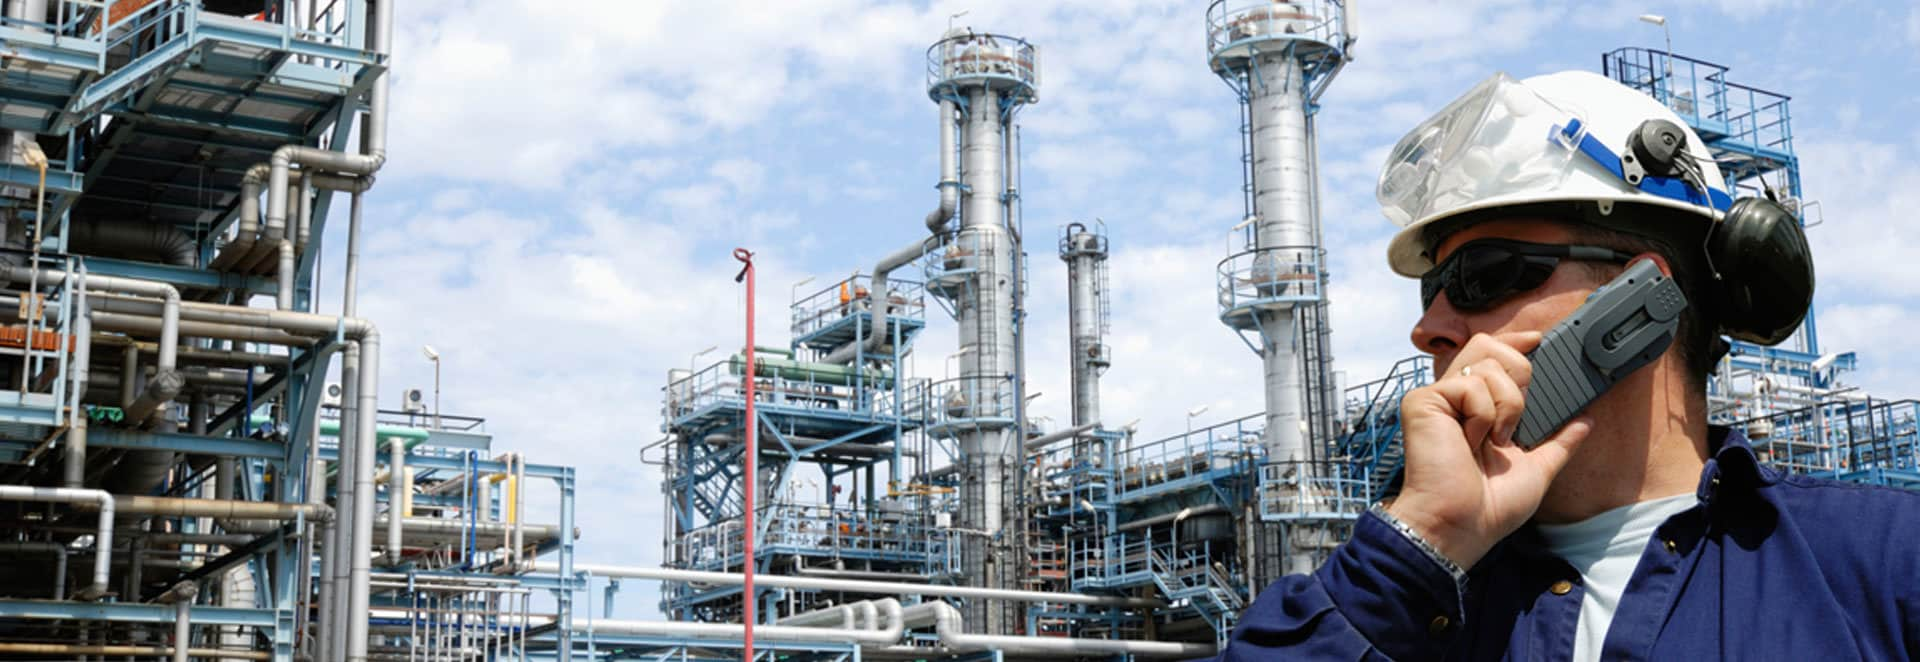 Petrotech Market - Refining and Petrochemical